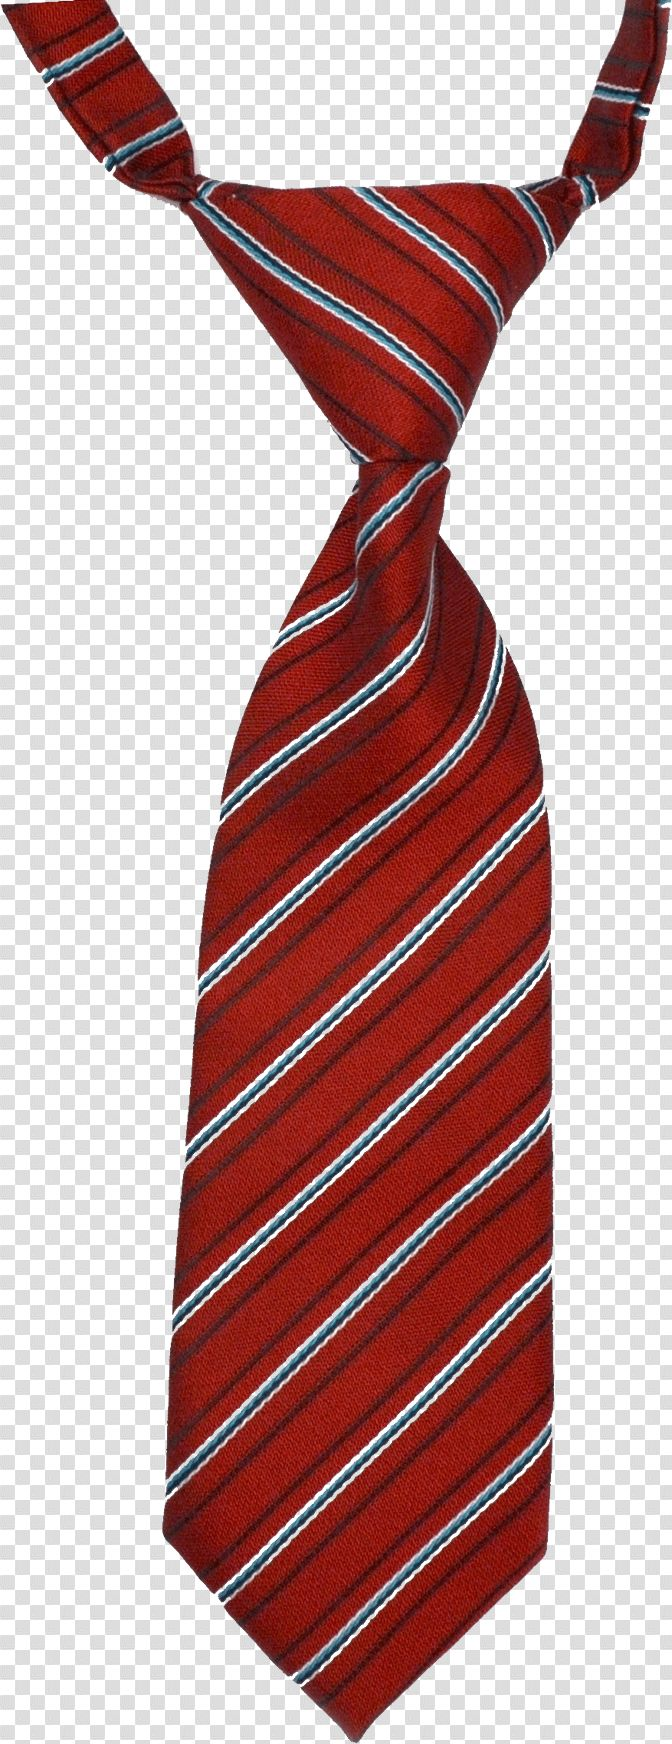 Red Tie Png Image Shirt Drawing Christmas Bow Tie Blue Checkered